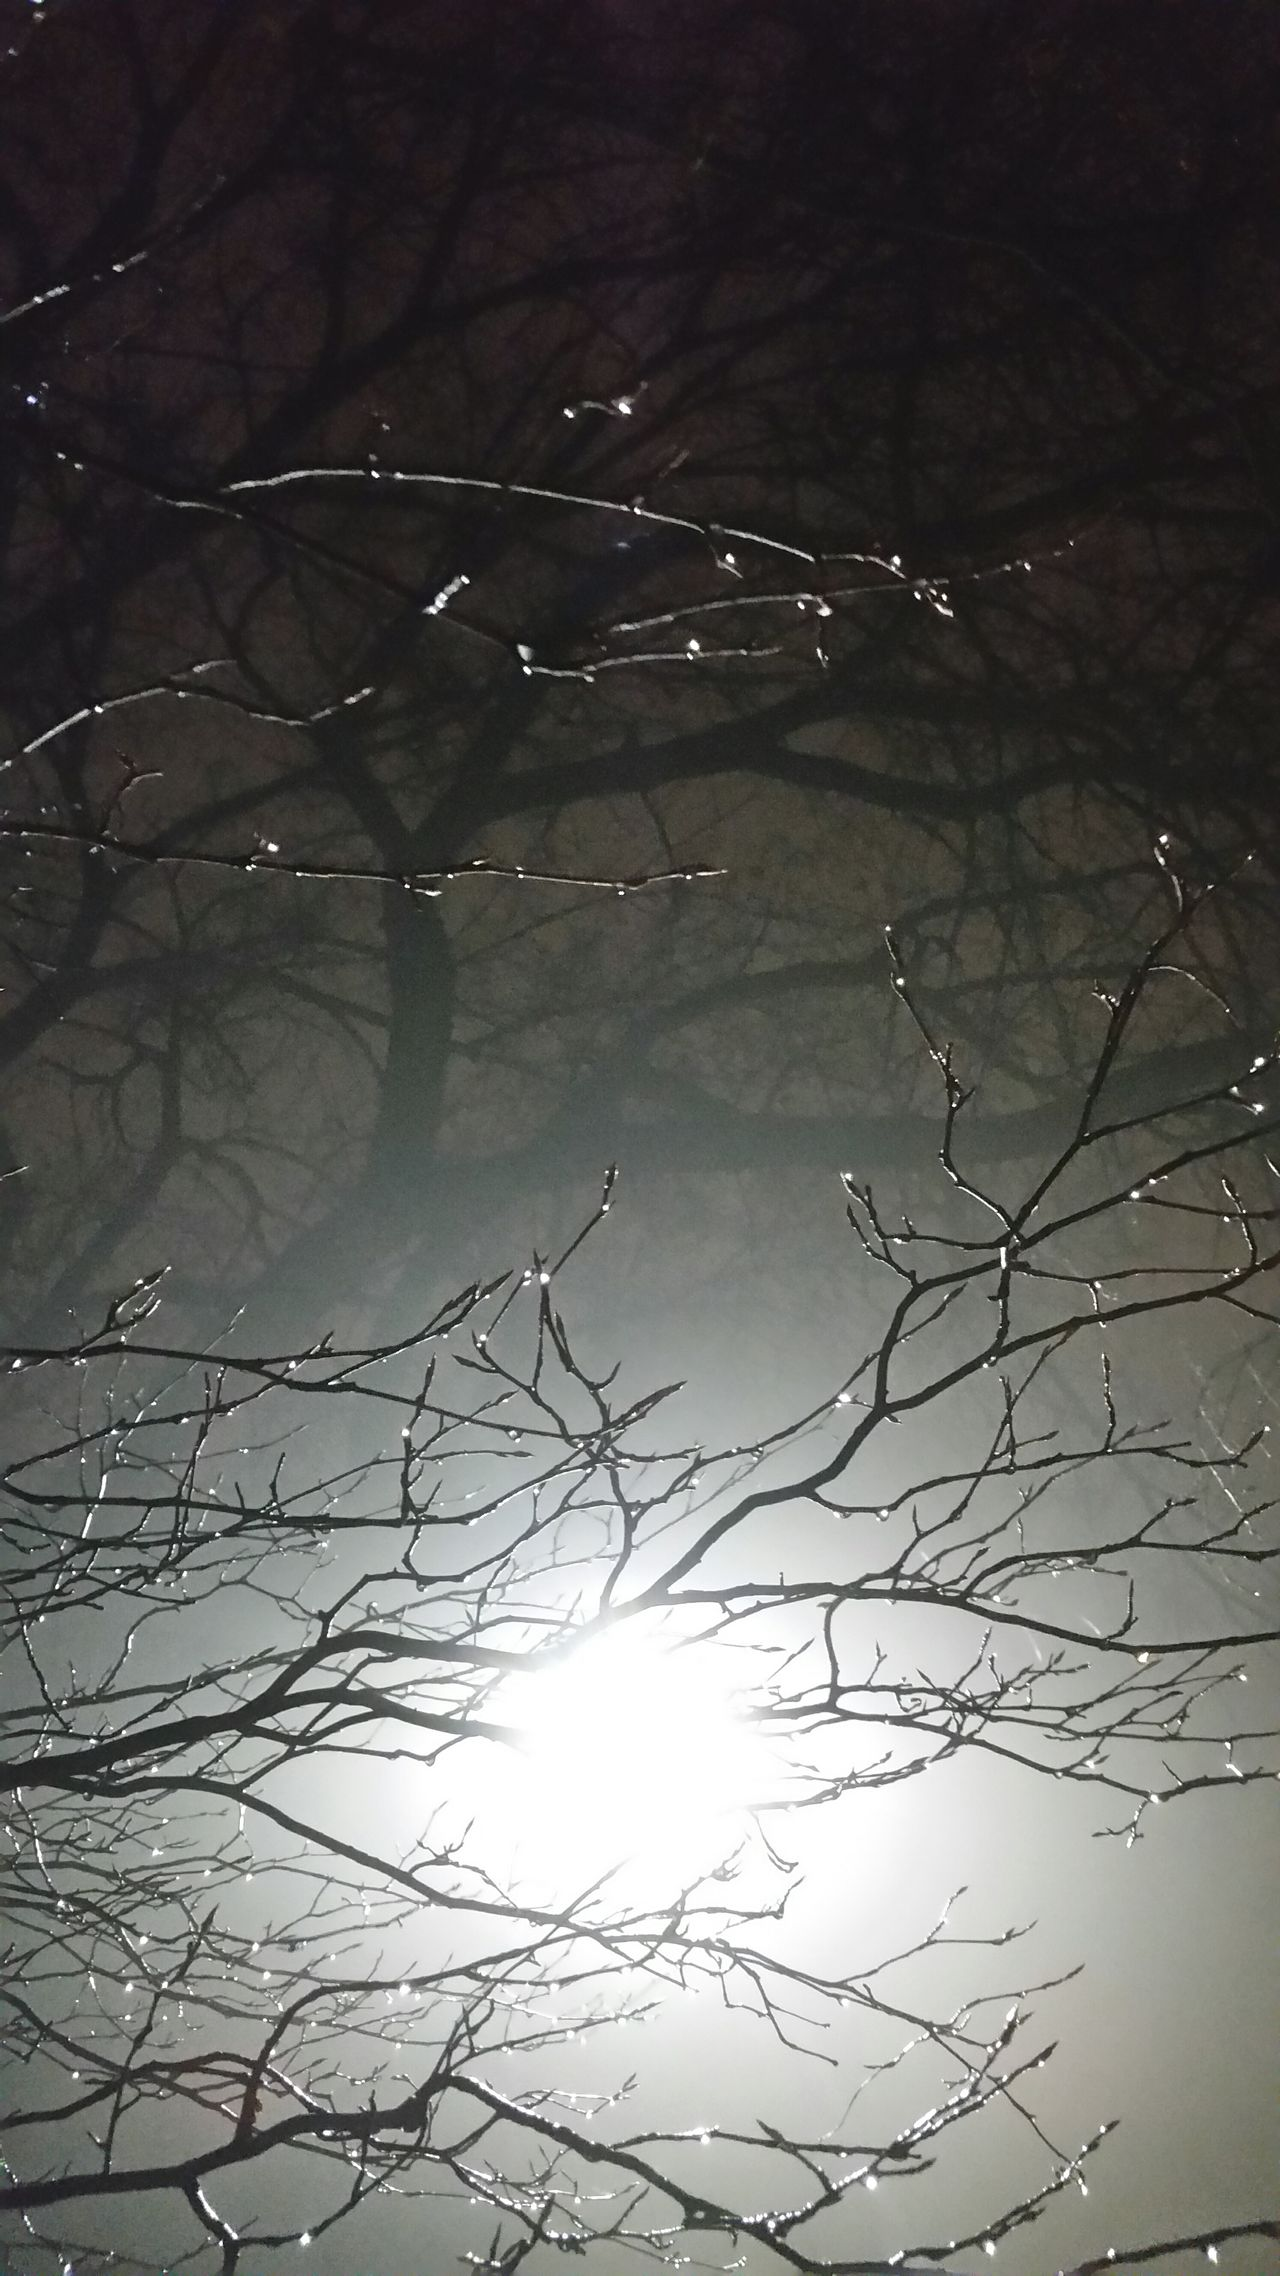 Beauty In Nature Branch Low Angle View Outdoors Neurons Dendrites  Brain Axon Nightphotography Trees Shodow Rain Drops 4K